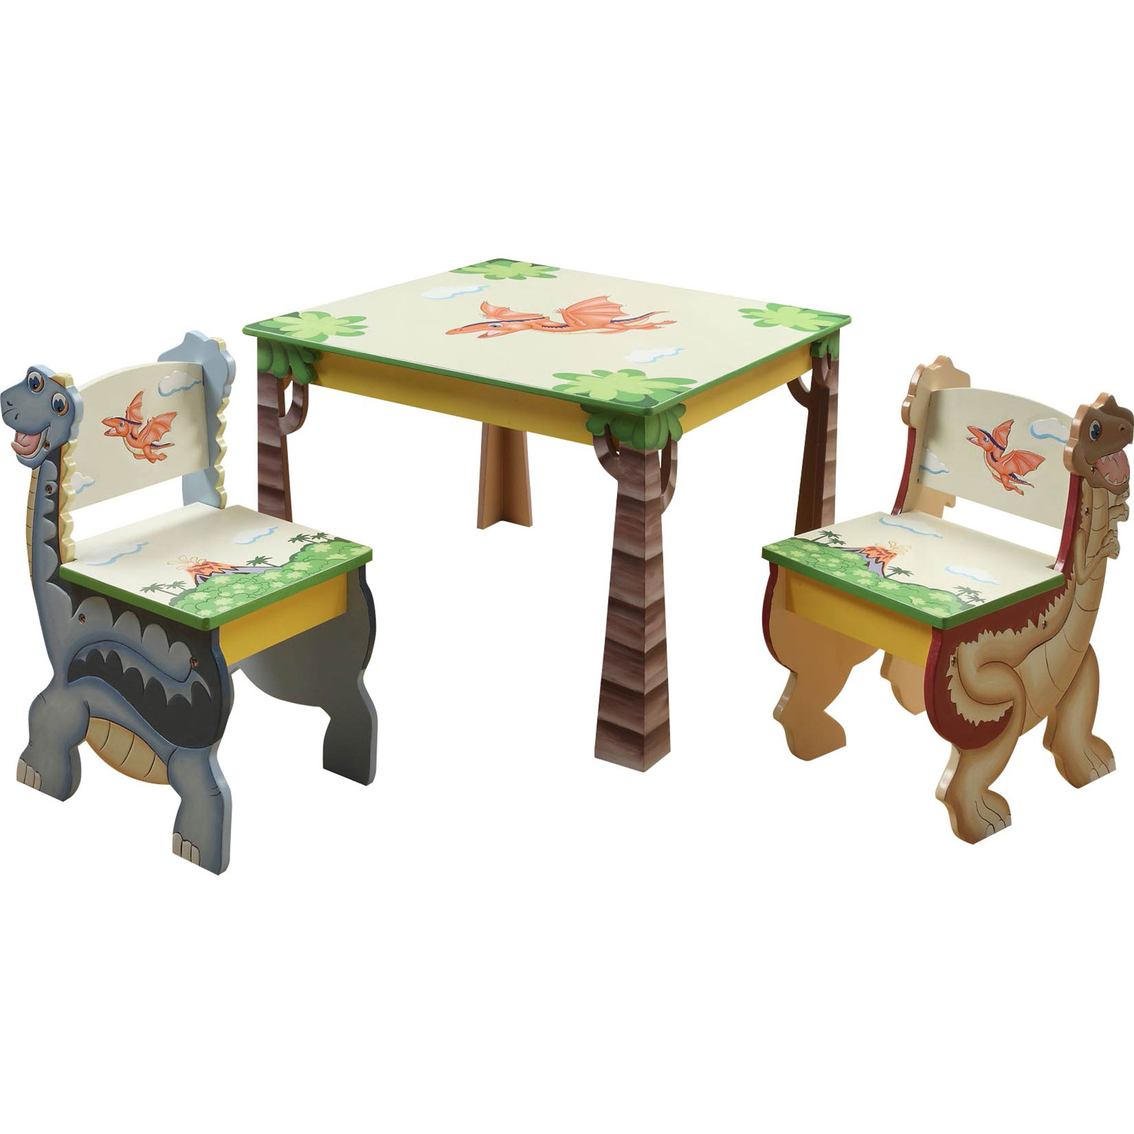 play tables and chairs hot pink chaise lounge fantasy fields dinosaur kingdom 3 pc table chair set